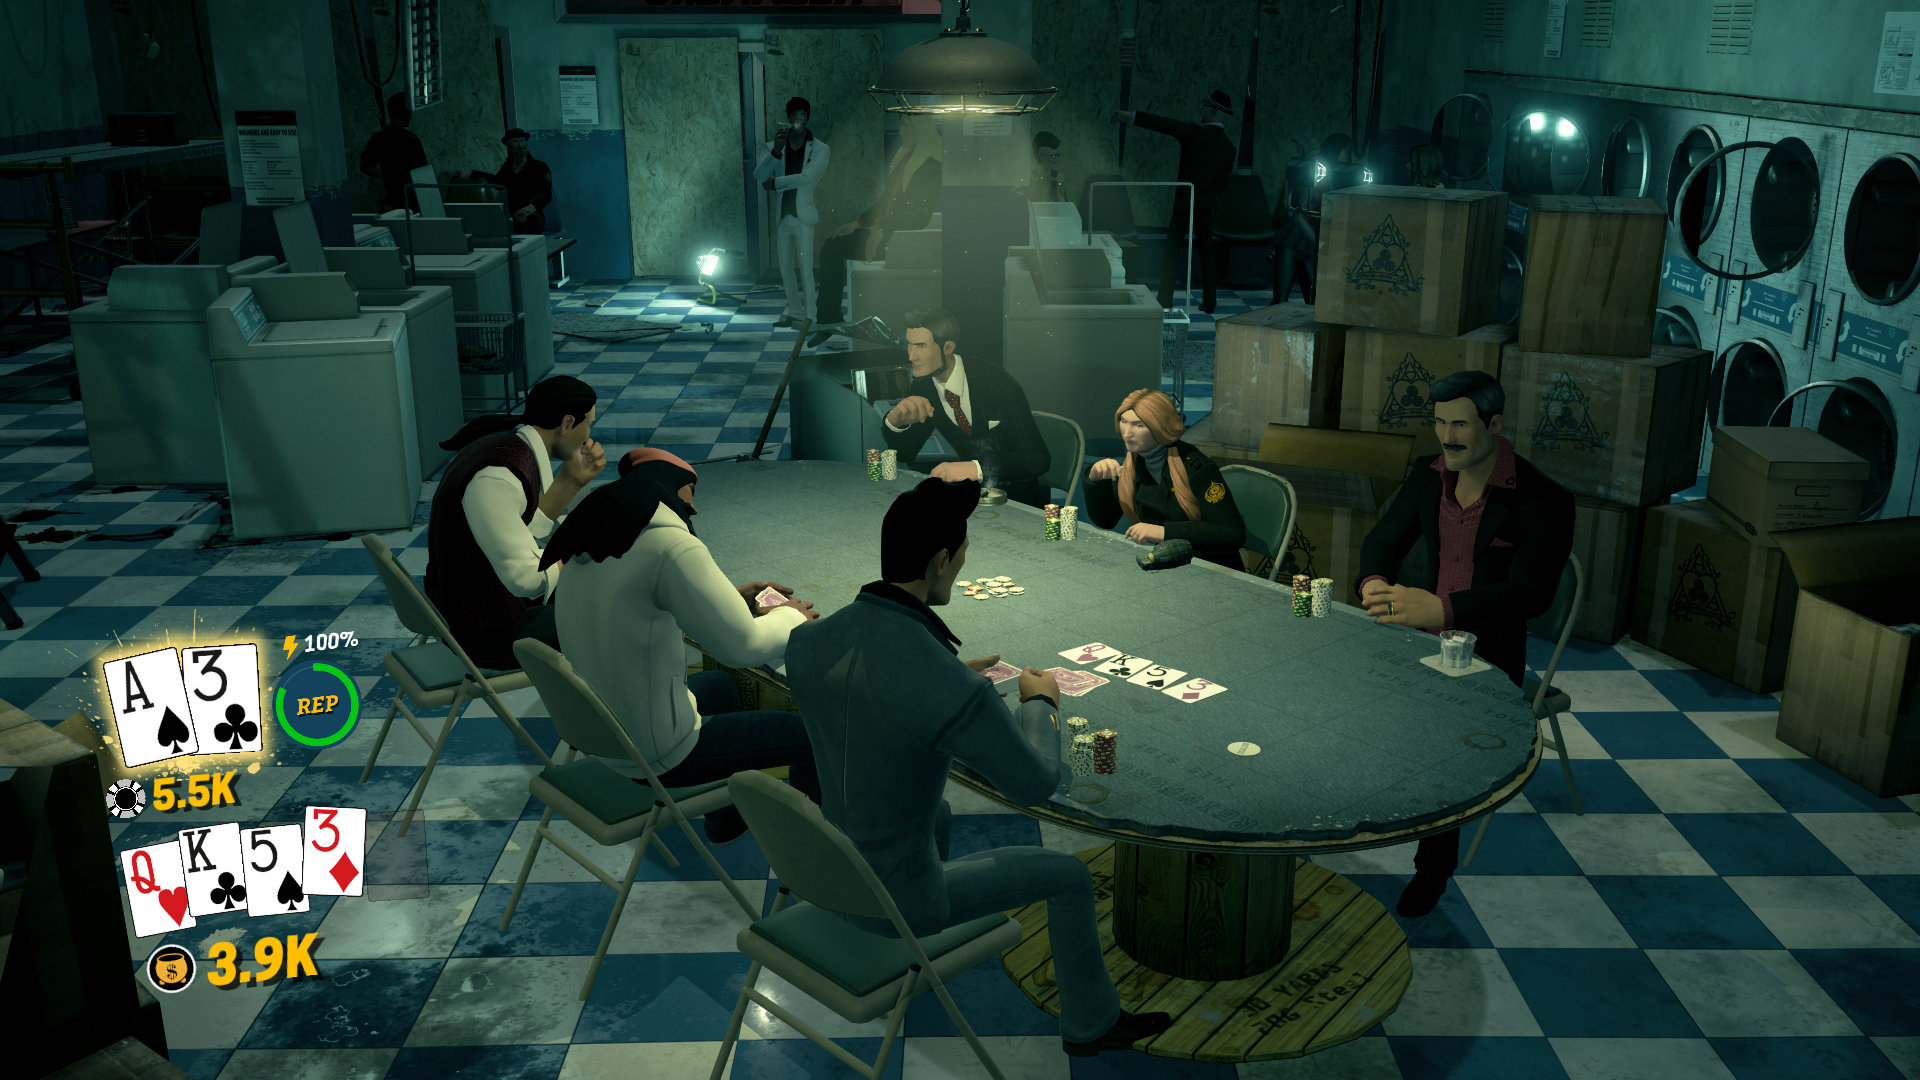 Poker video games ps4 friends episode the one with all the poker